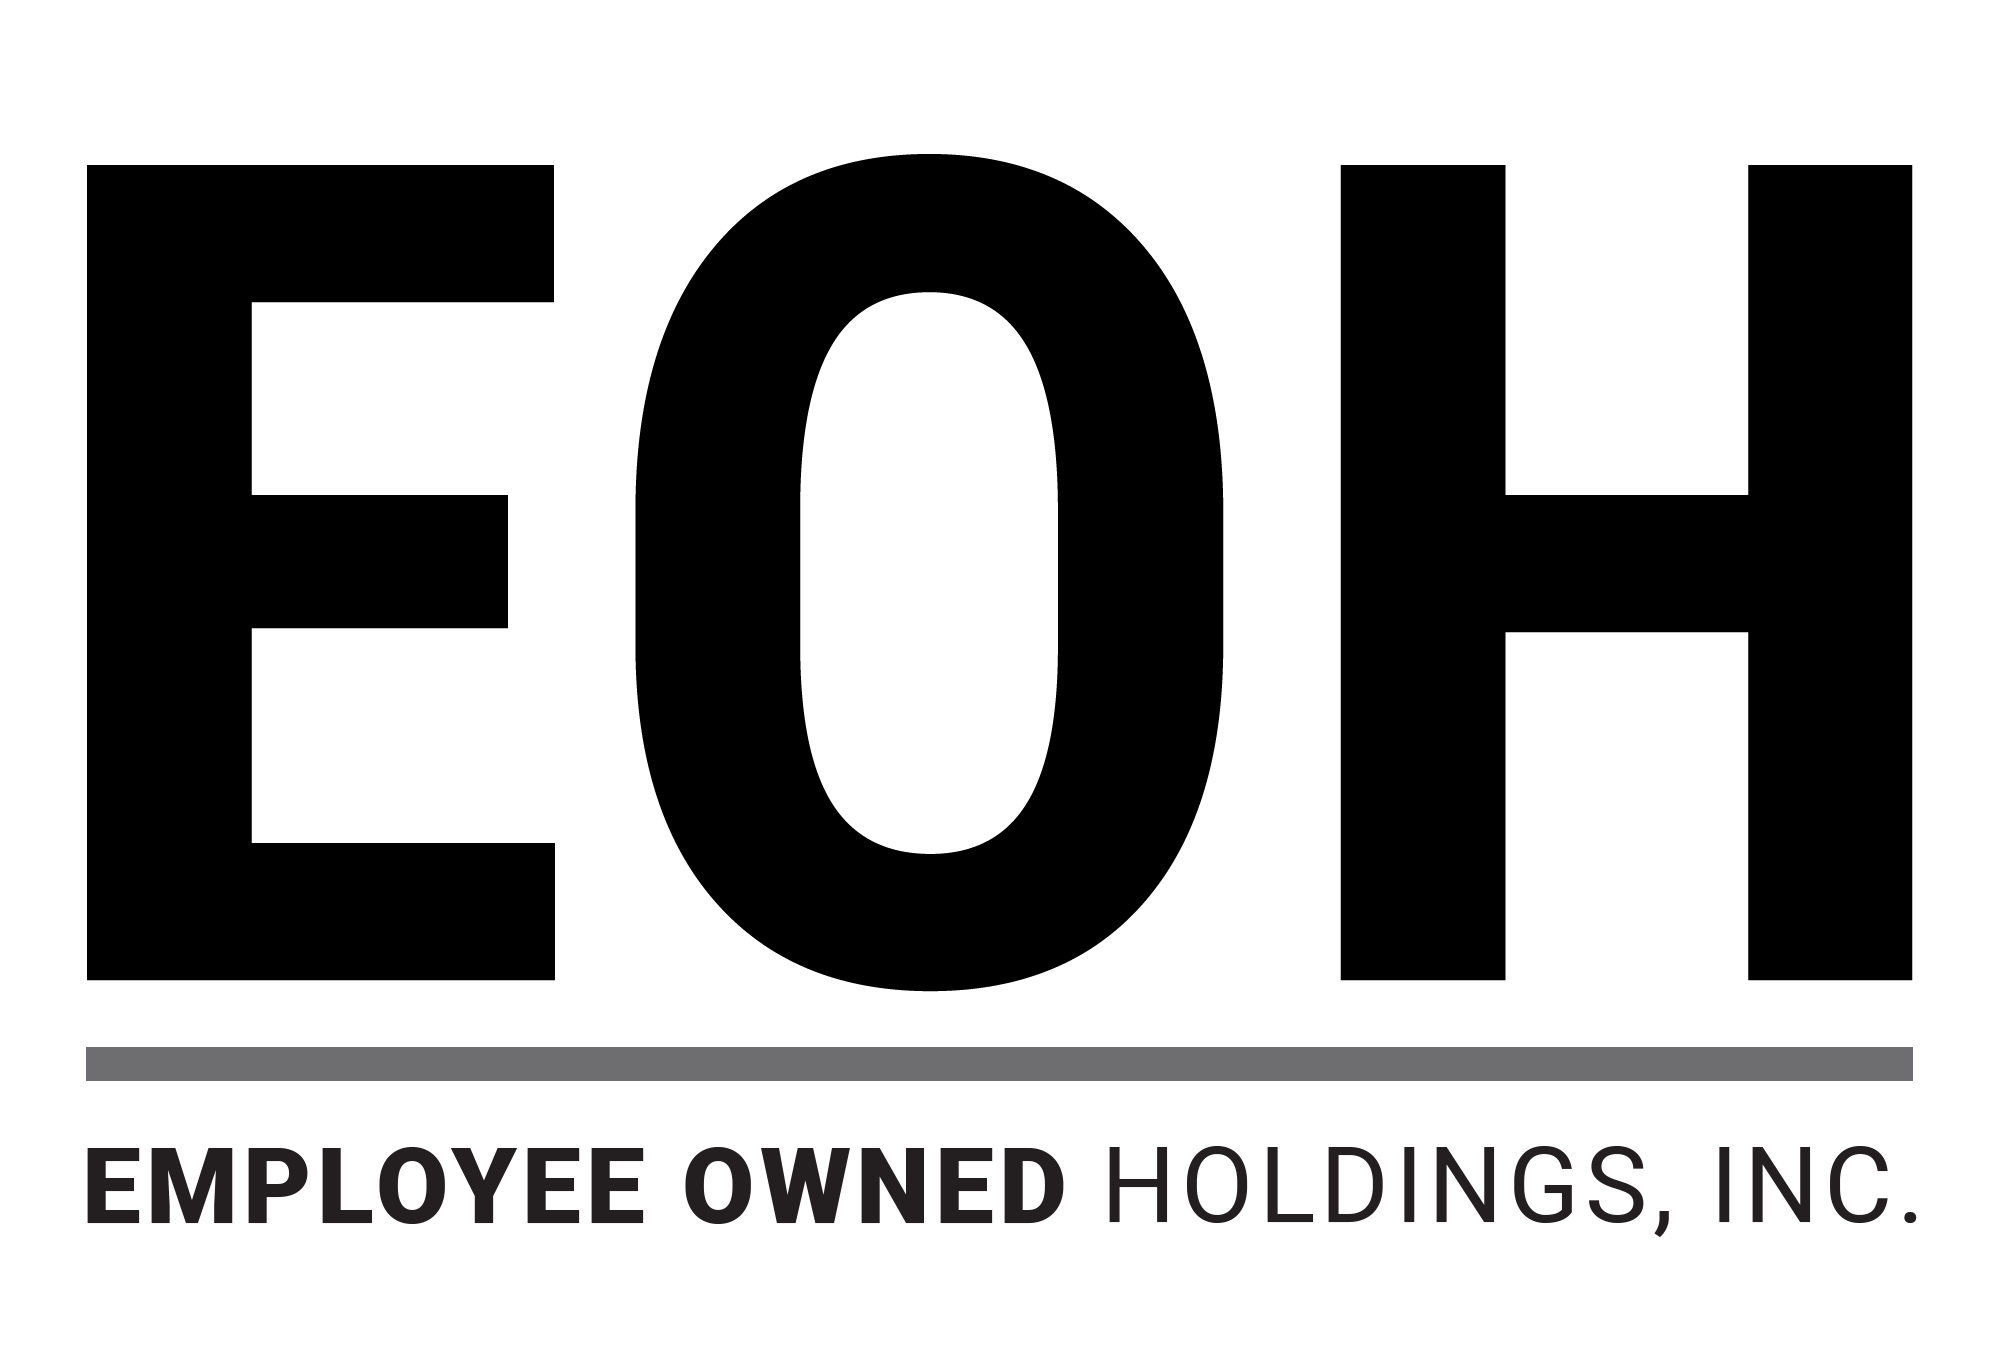 Employee Owned Holdings, Inc